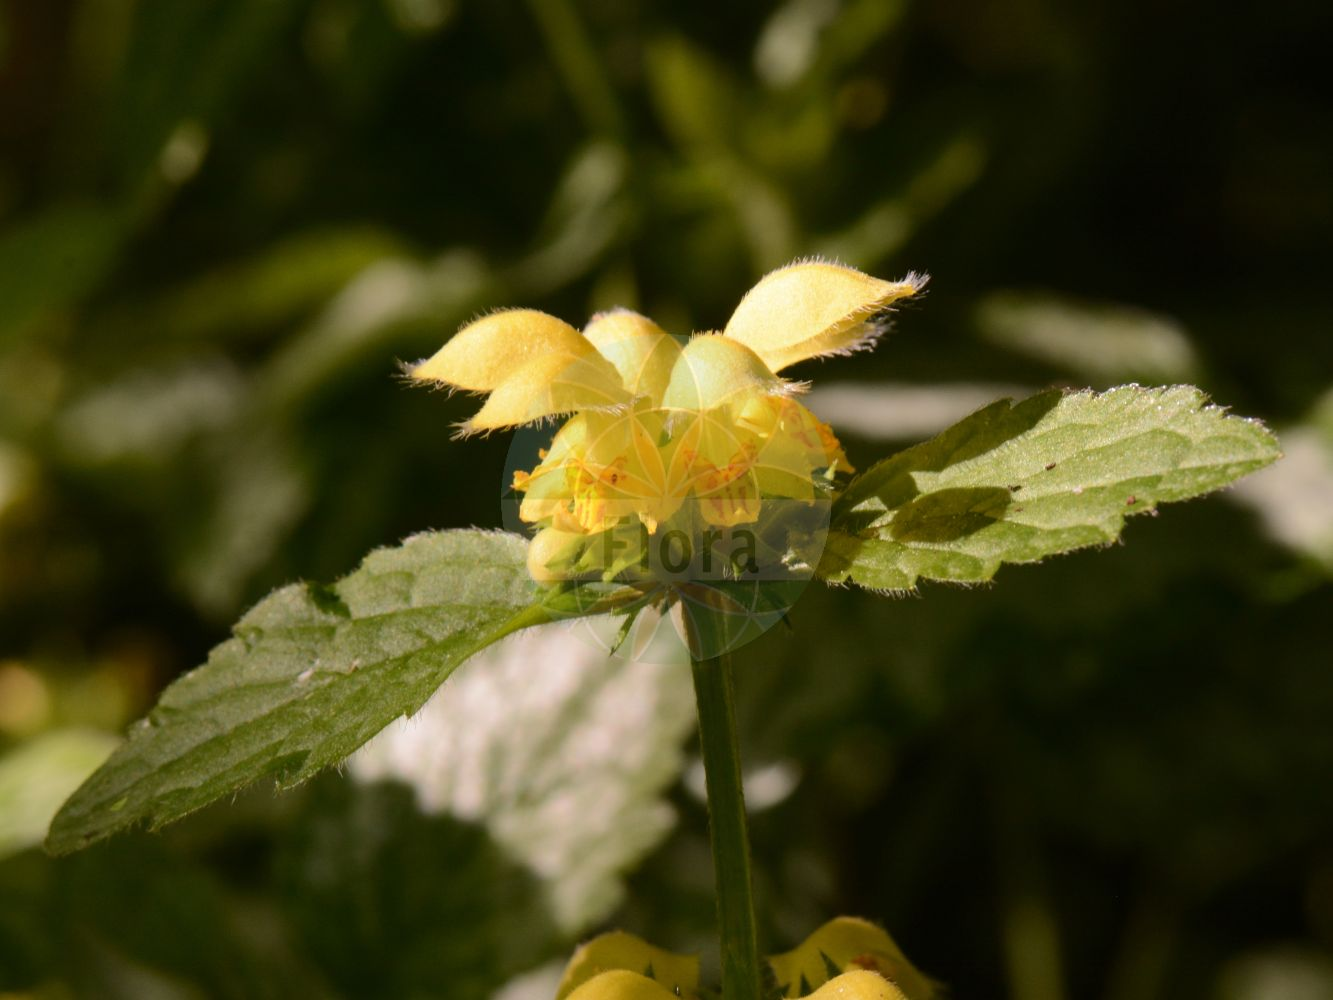 Foto von Lamium galeobdolon subsp. galeobdolon (Echte Goldnessel - Yellow Archangel). ---- Photo of Lamium galeobdolon subsp. galeobdolon (Echte Goldnessel - Yellow Archangel).(Lamium galeobdolon subsp. galeobdolon,Echte Goldnessel,Yellow Archangel,Pollichia vulgaris,Gewoehnliche Goldnessel,Silber-Goldnessel,Aluminium Plant,Artillery Plant,Lamium,Taubnessel,Deadnettle,Lamiaceae,Lippenbluetengewaechse;Lippenbluetler,Nettle family)